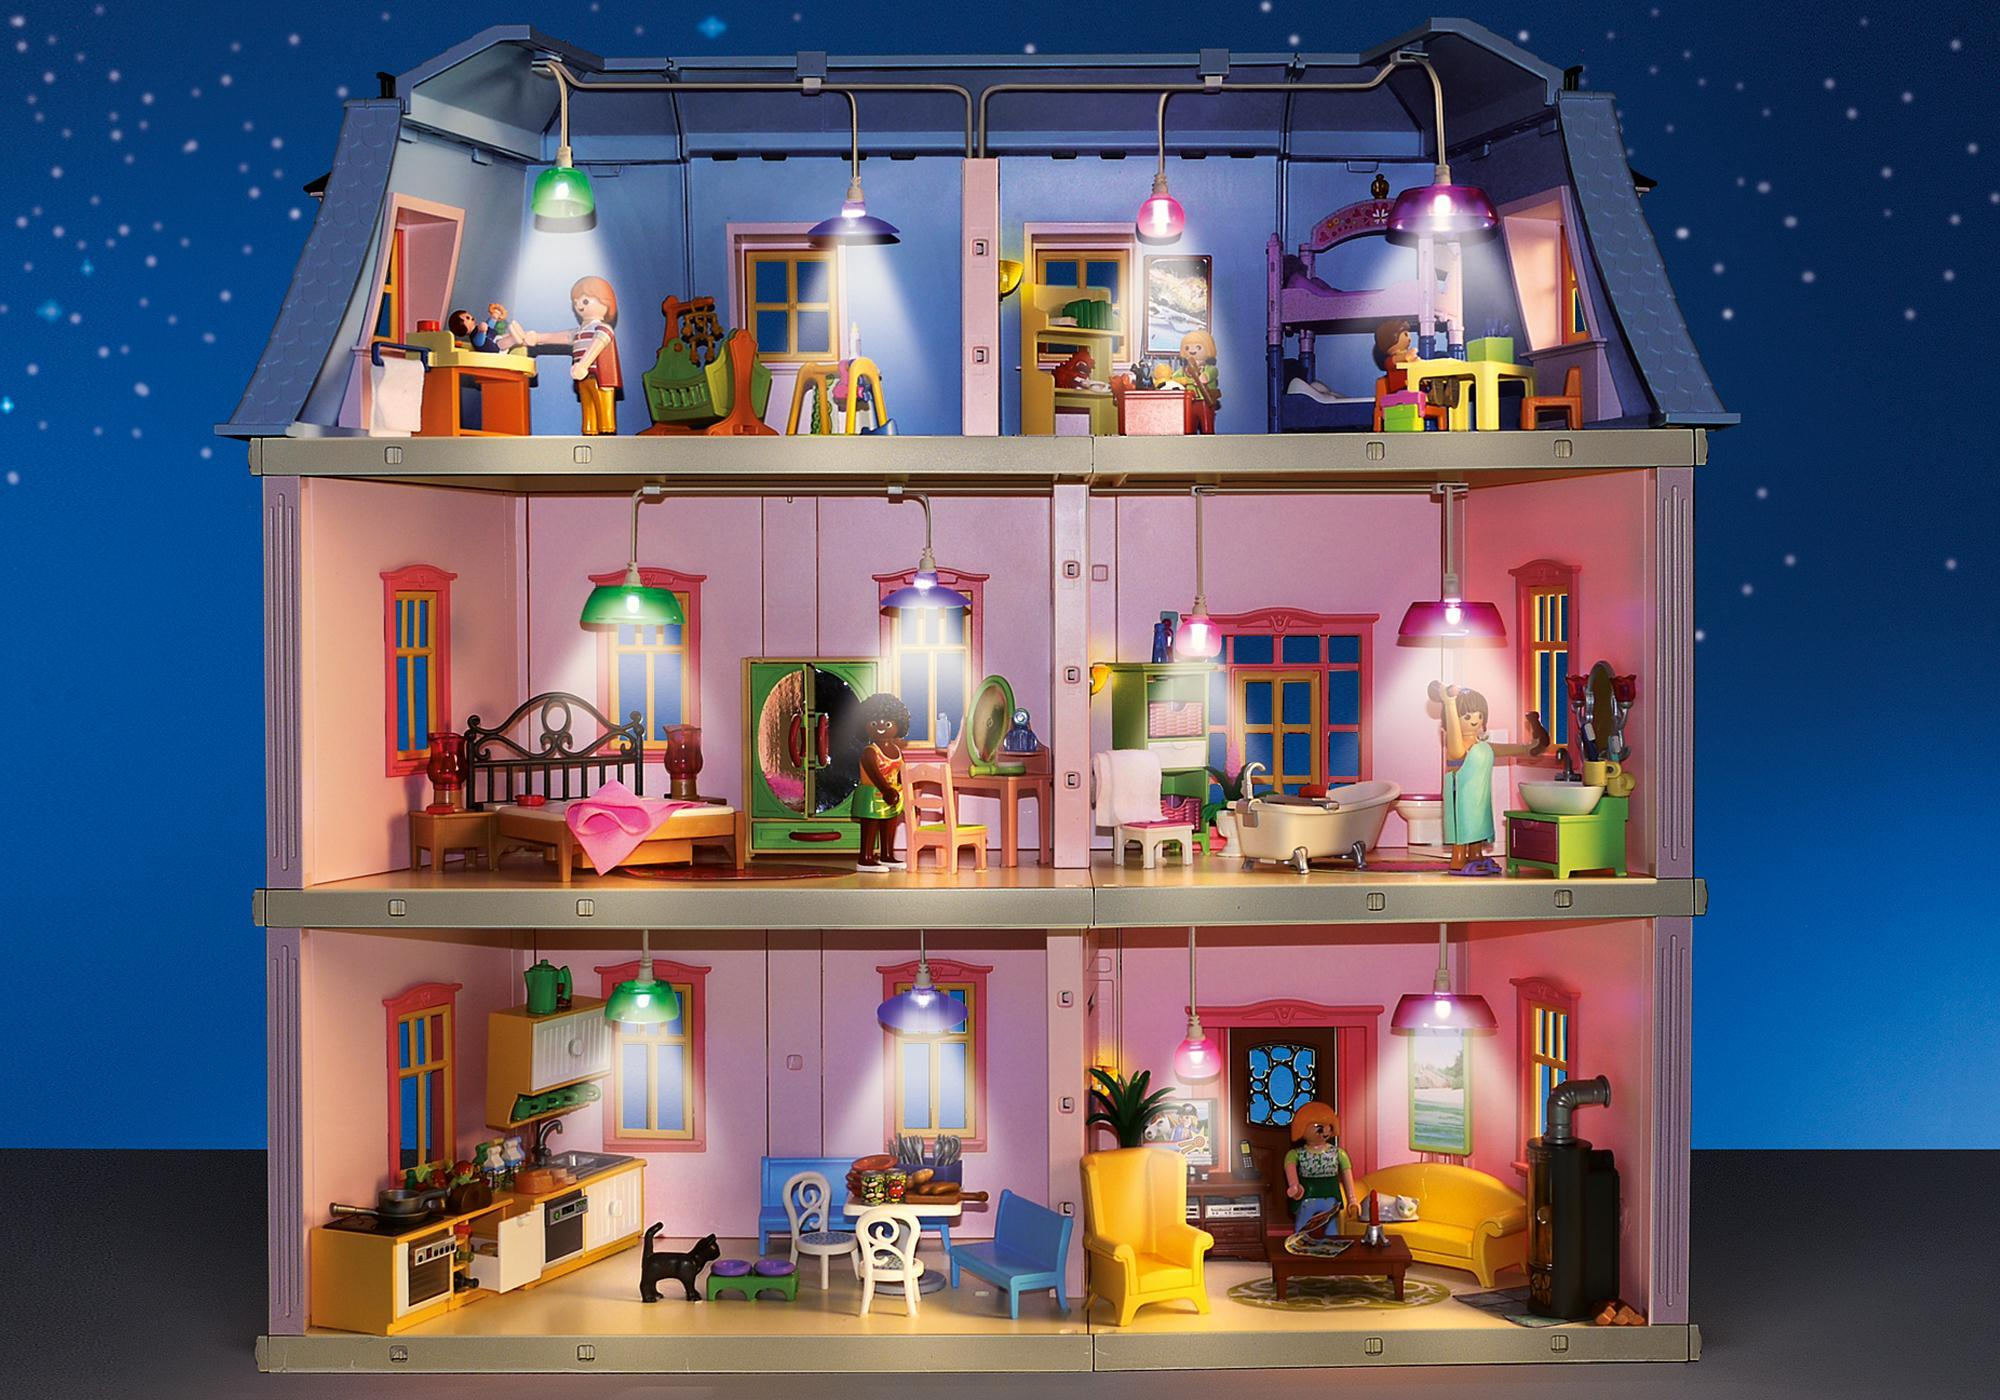 http://media.playmobil.com/i/playmobil/6456_product_extra1/Kit d'éclairage pour maison traditionnelle (Réf. 5303)